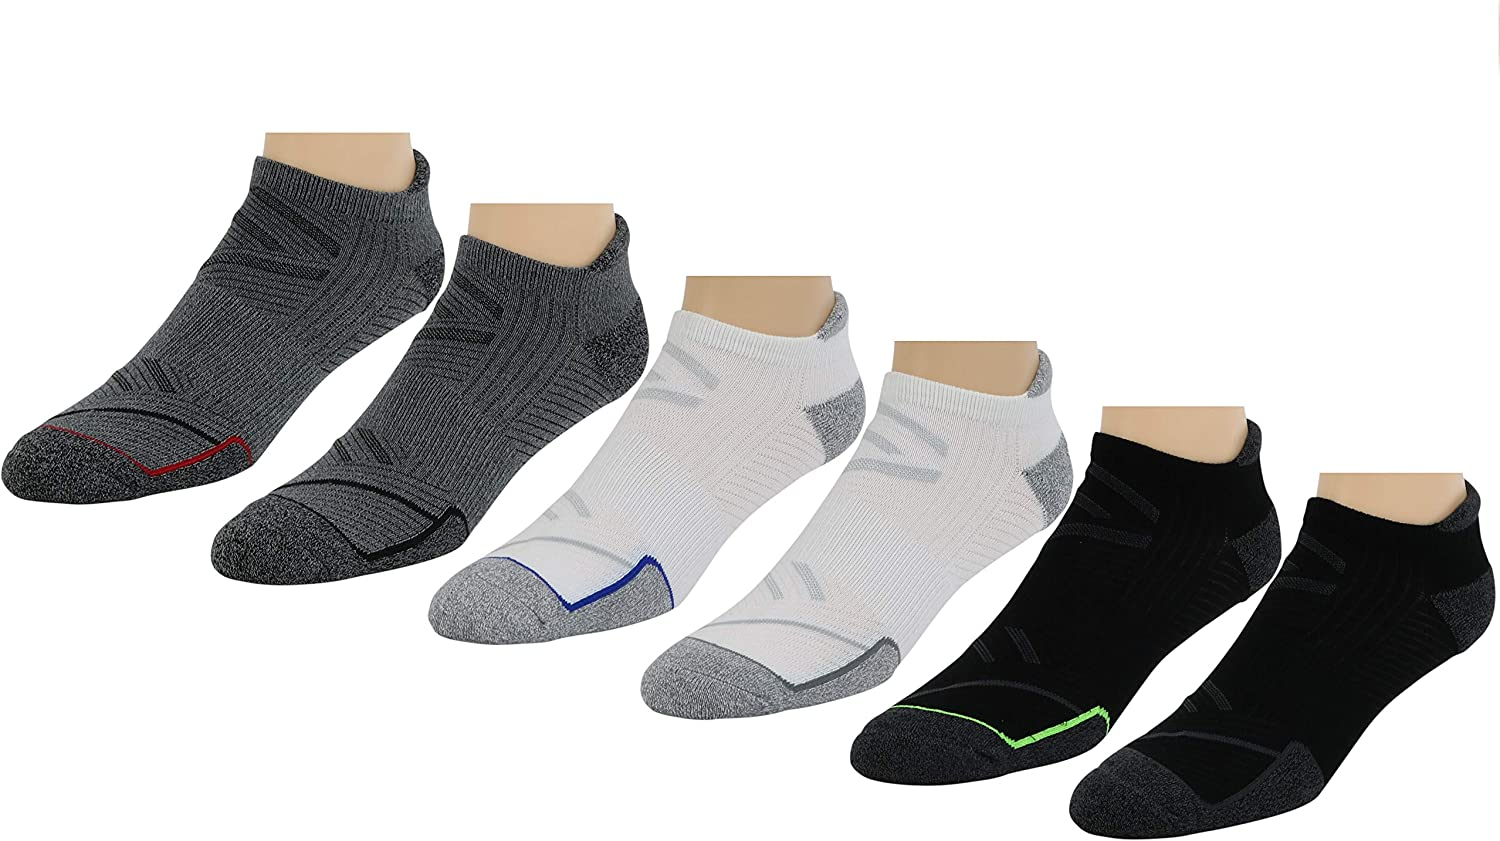 Sofsole Men's Bamboo Performance No-Show With Heel Tab Socks, Size 8-12.5, 3 Colors, 6-Pairs